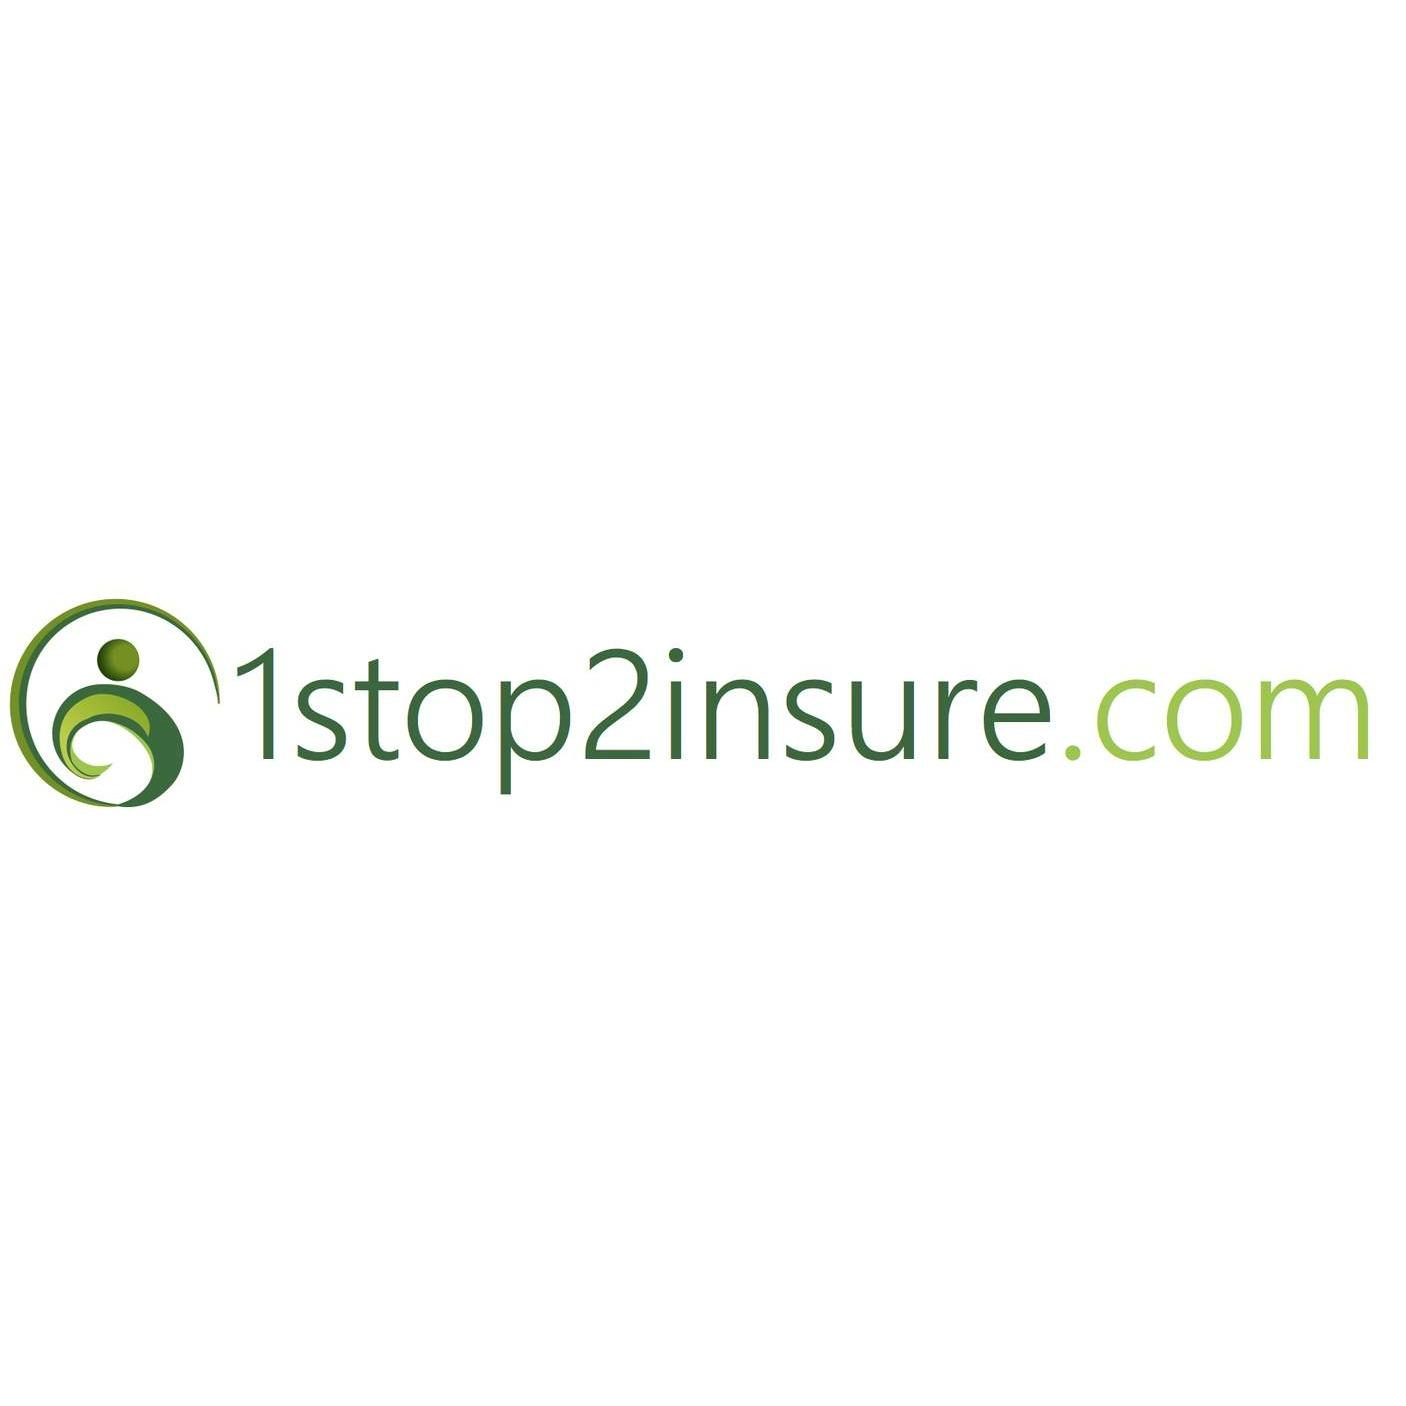 1stop2insure - Healthcare Solutions Team